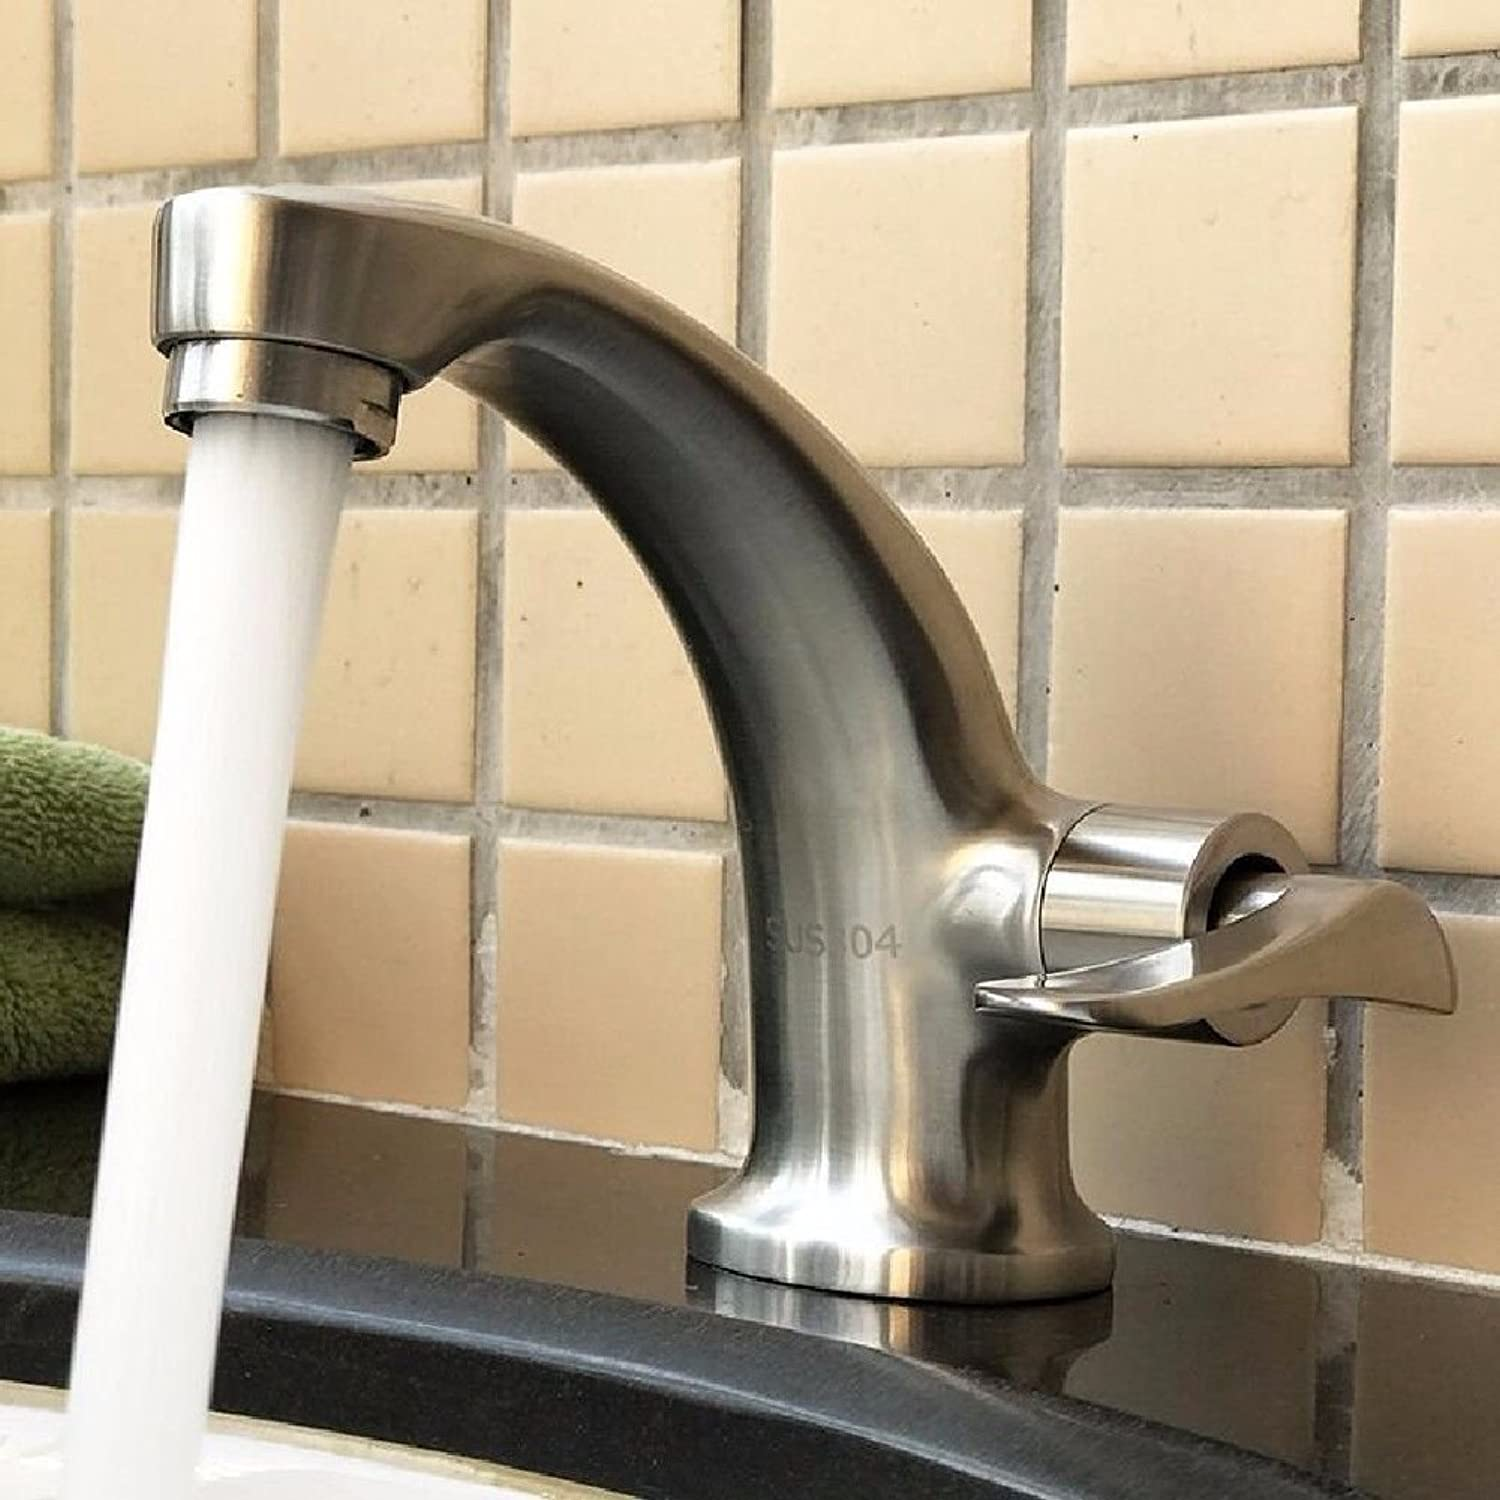 NewBorn Faucet Water Taps Hot And Cold Water Stainless Steel Single Cold Wash